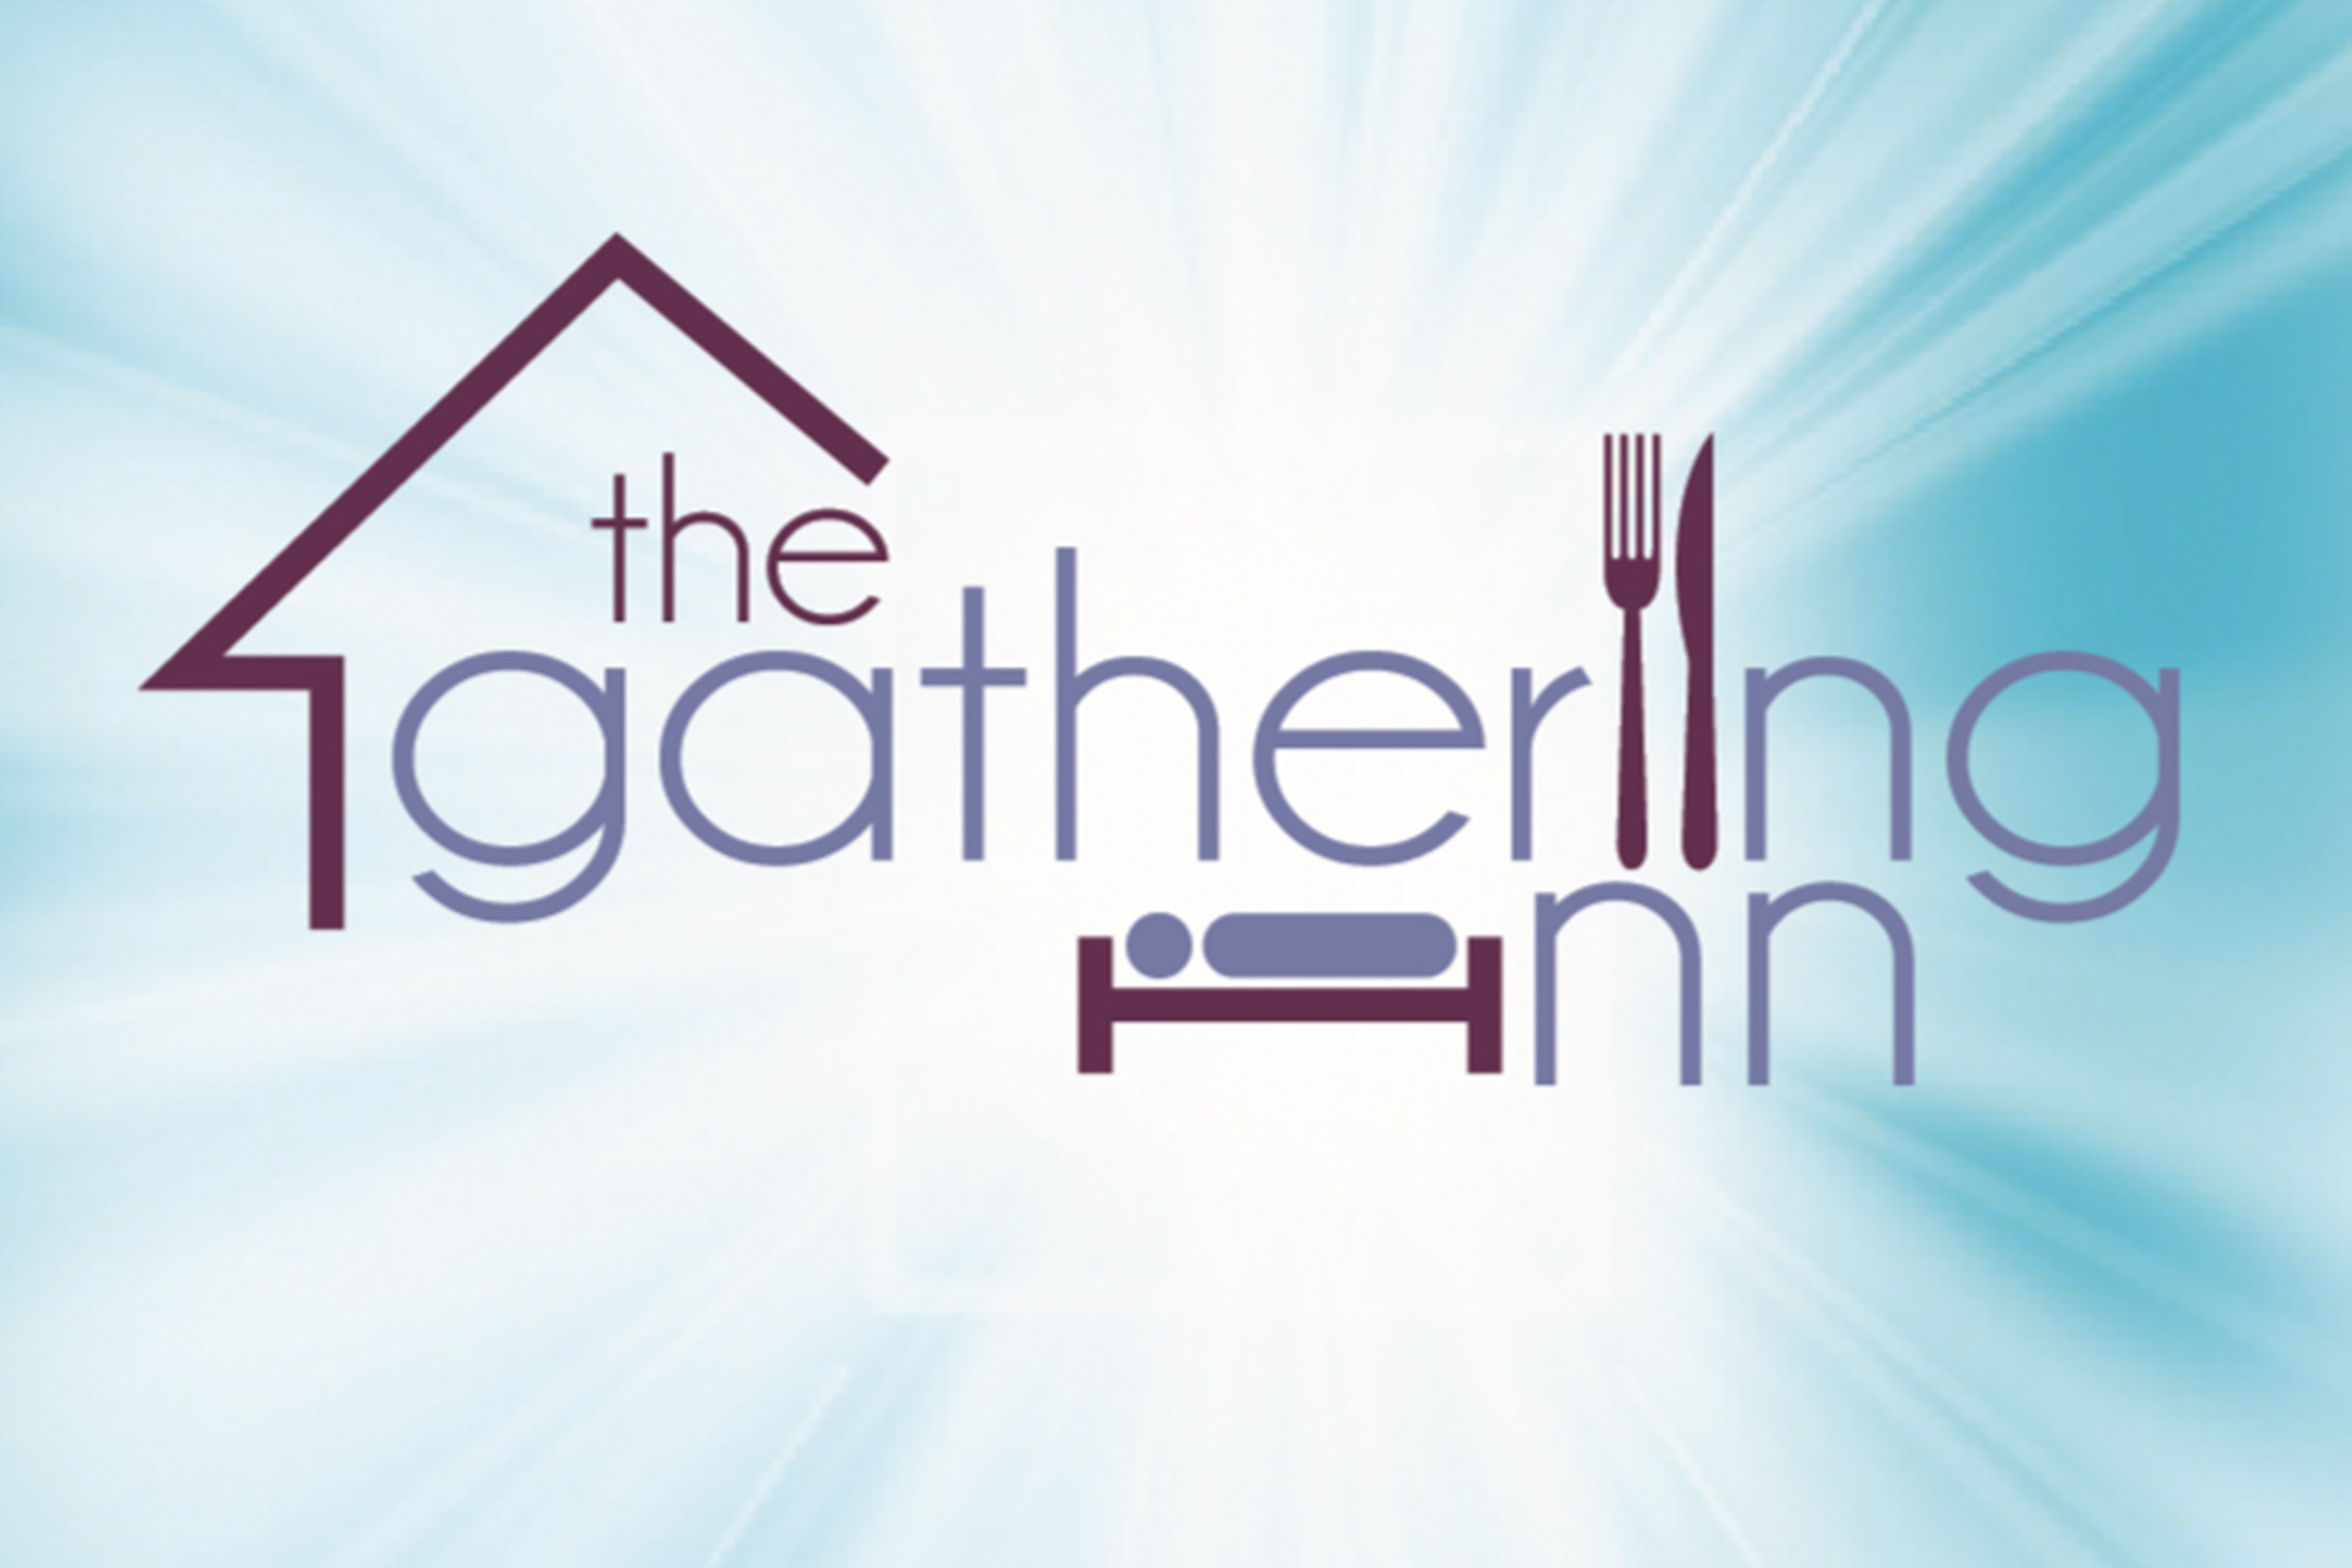 GATHERING INN - One Time Per Month (Day Varies), 6 - 8 pm. The Gathering Inn is an organization dedicated to helping lift the homeless of our community by providing temporary housing, job resources, meals and more. We host the Gathering Inn every month by giving them a place to sleep & feeding them an amazing dinner! If you are interested in serving, contact gatheringinn@lifecconline.com.